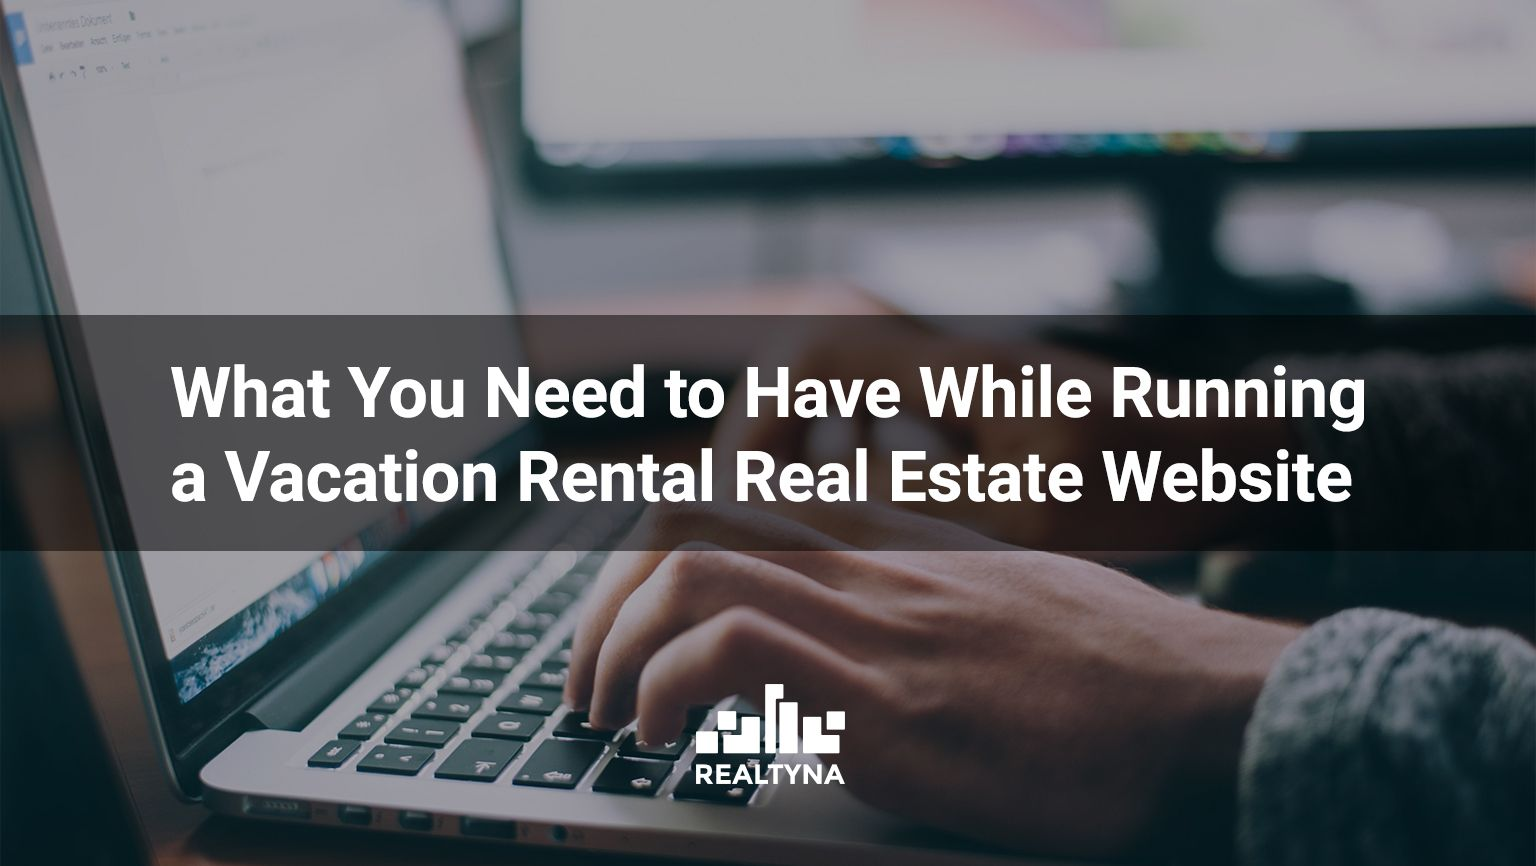 What You Need to Have While Running Vacation Rental Real Estate Website